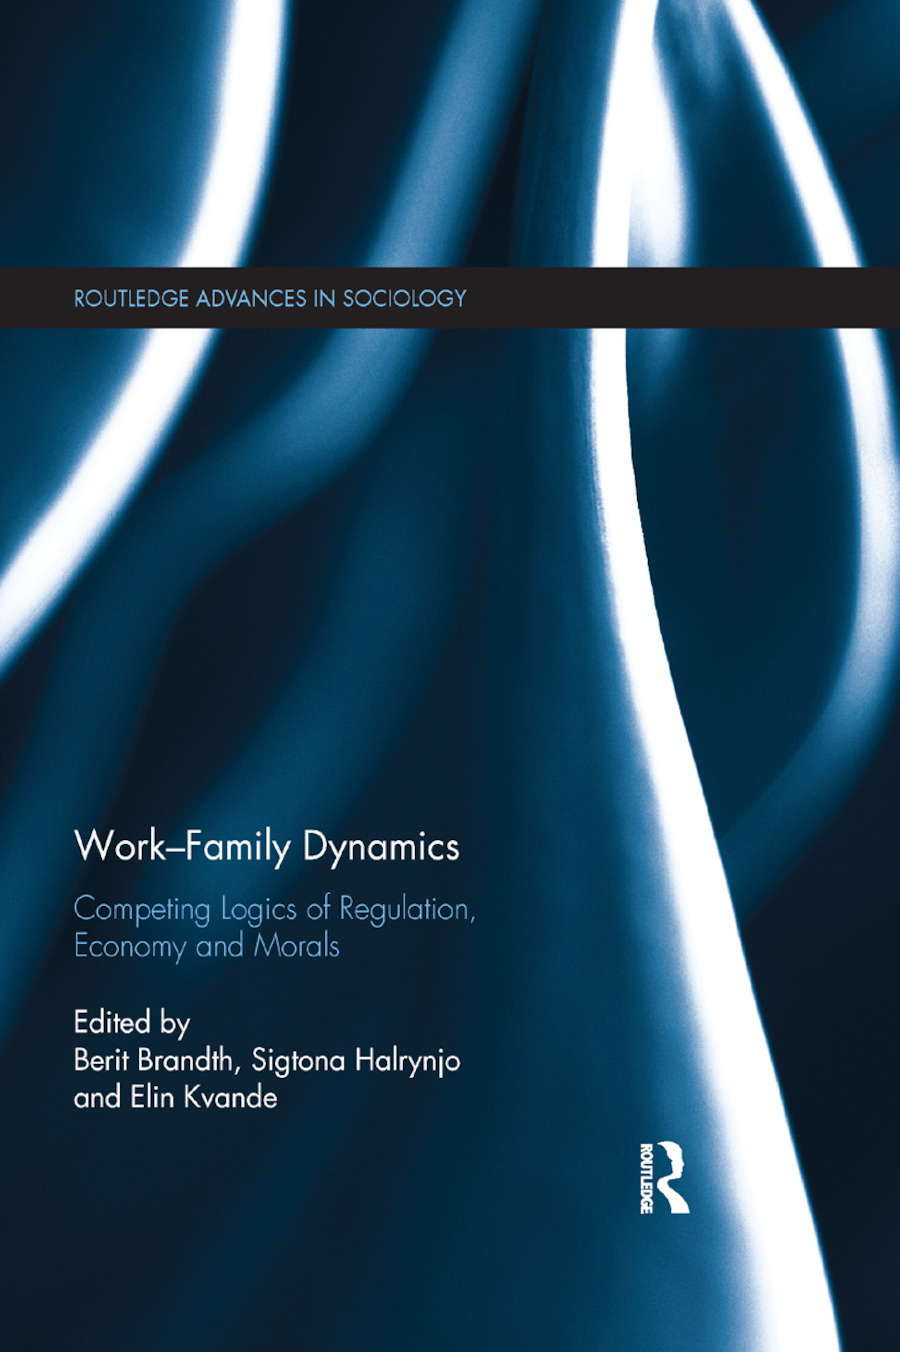 Work-Family Dynamics: Competing Logics of Regulation, Economy and Morals book cover